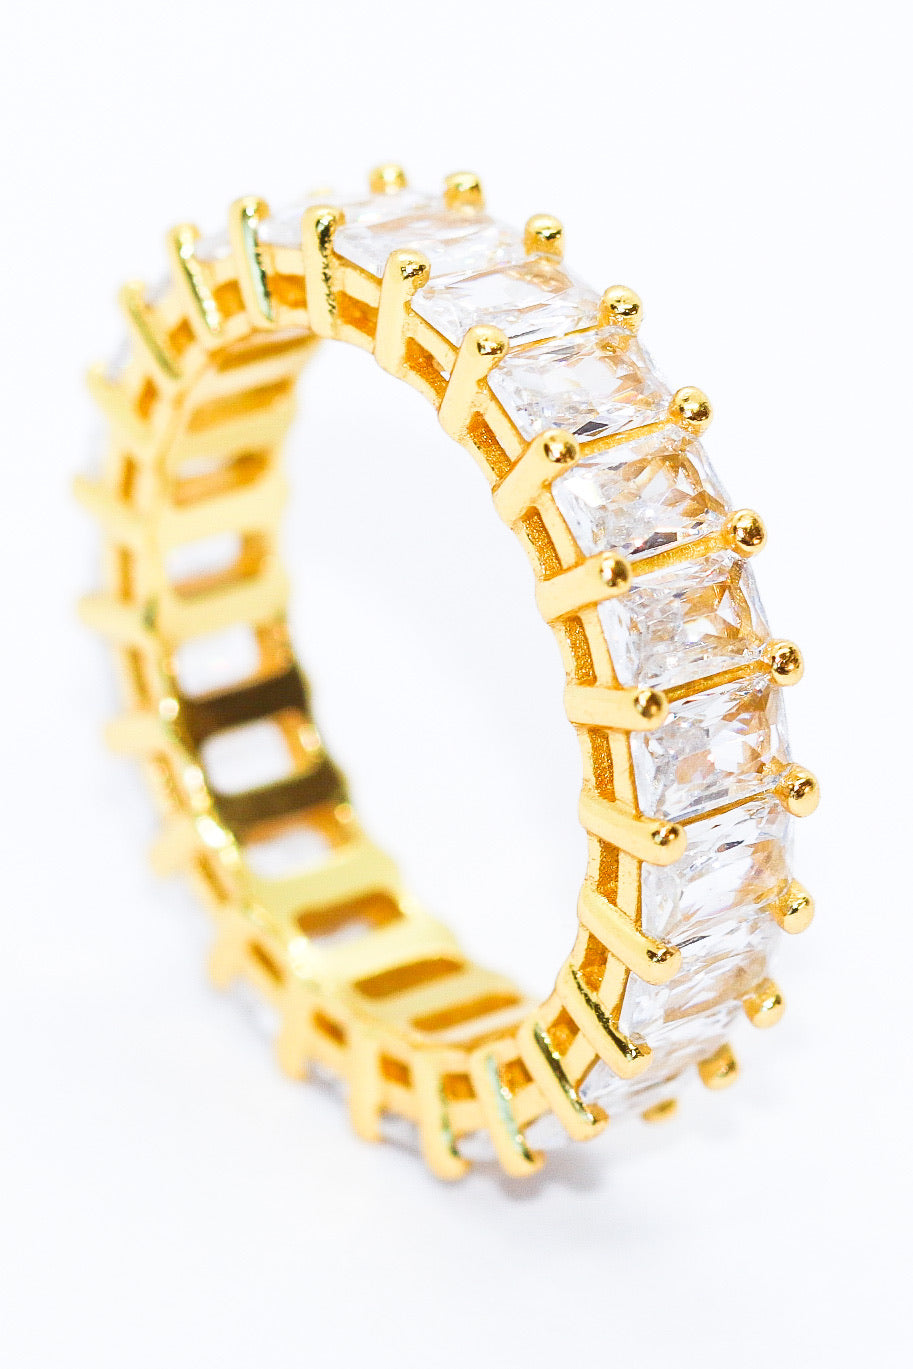 RECTANGLE BLING BAND - Taimana Boutique